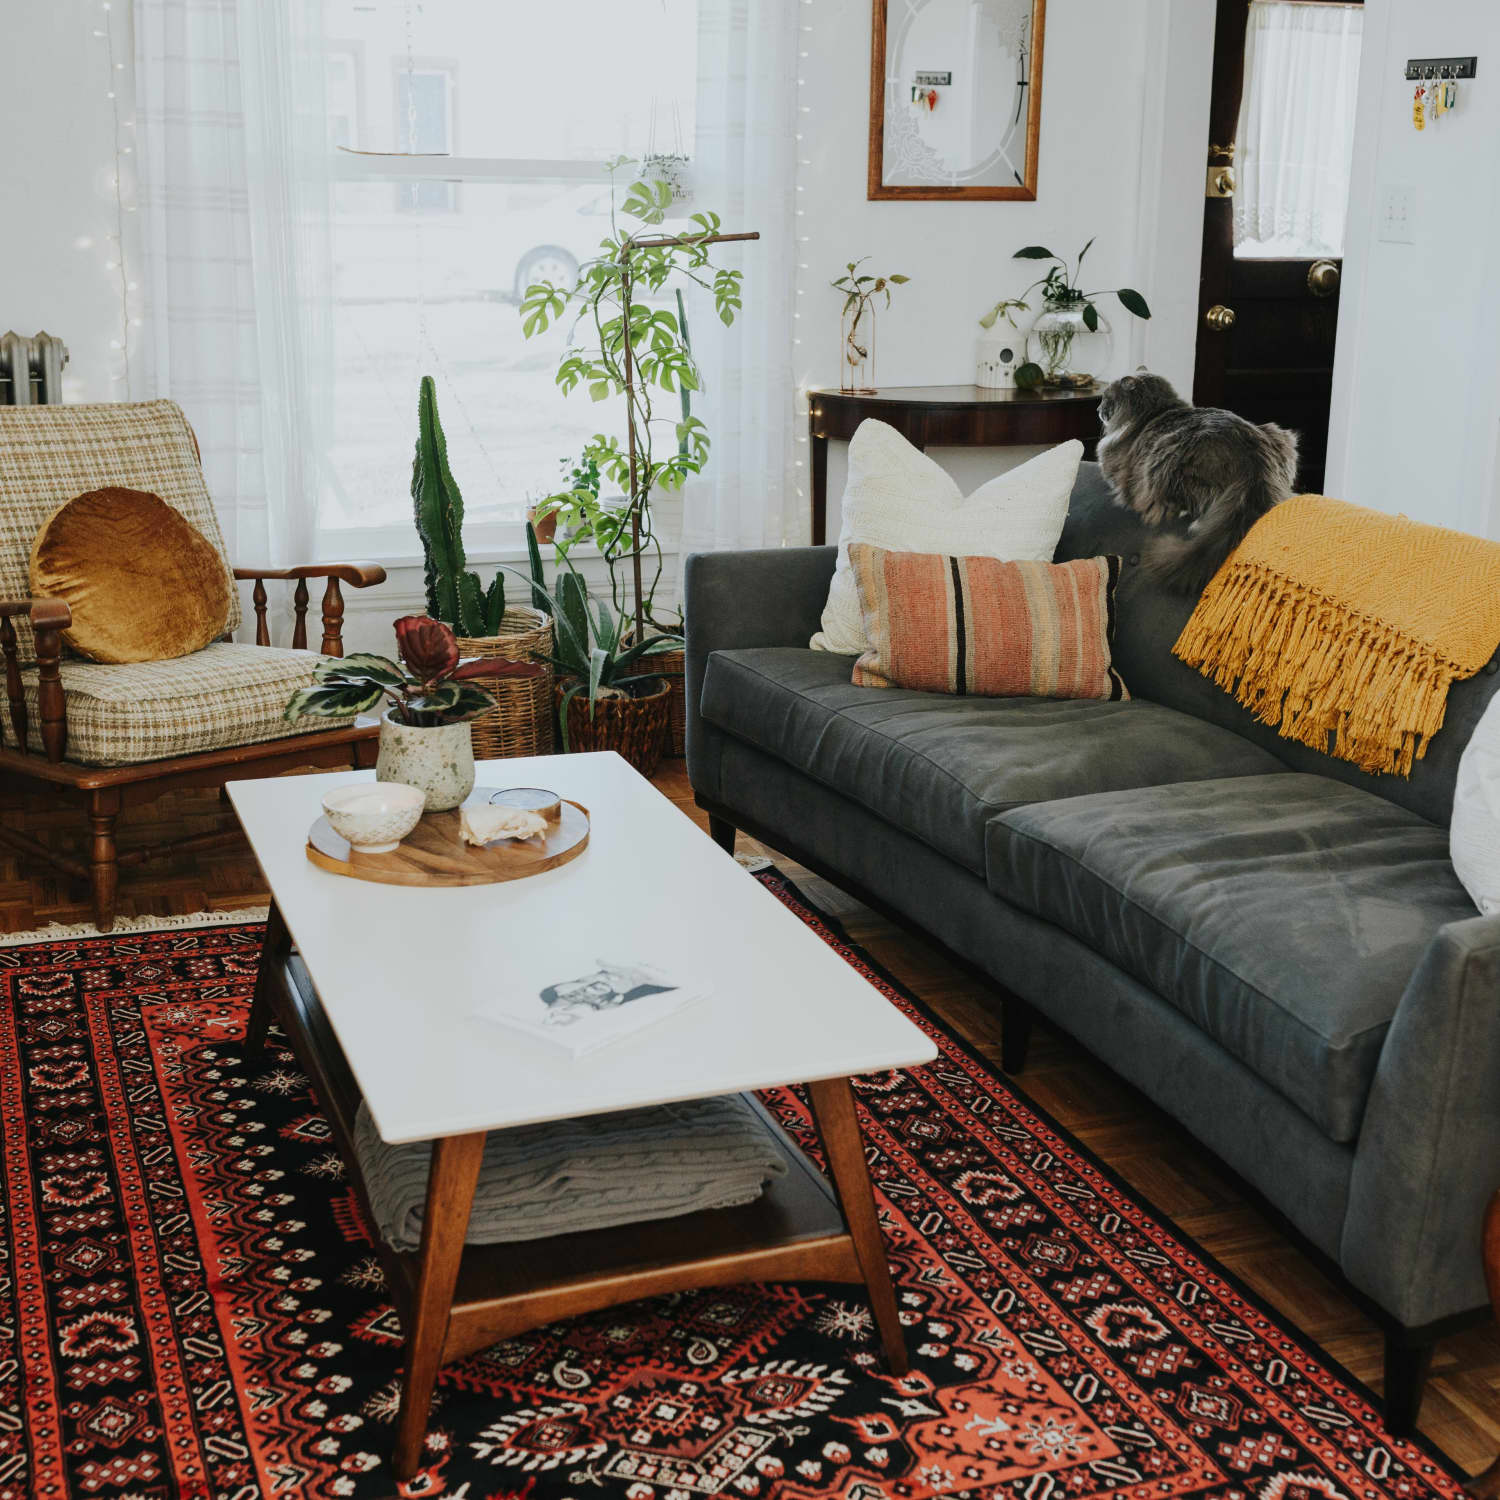 The Best Apartment Hunting Advice, According To Reddit